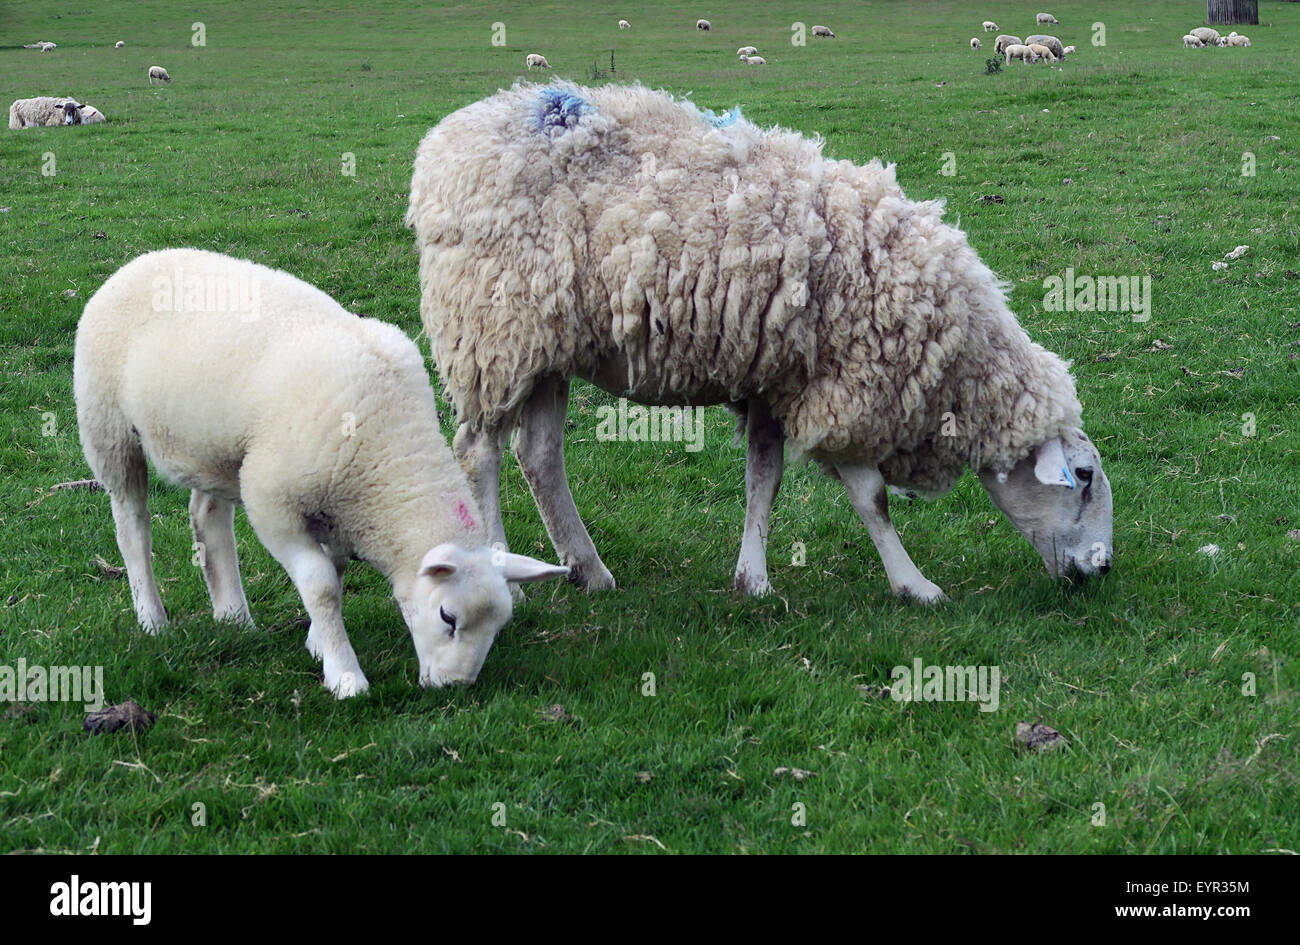 Ewe and lamb grazing in field of sheep. - Stock Image